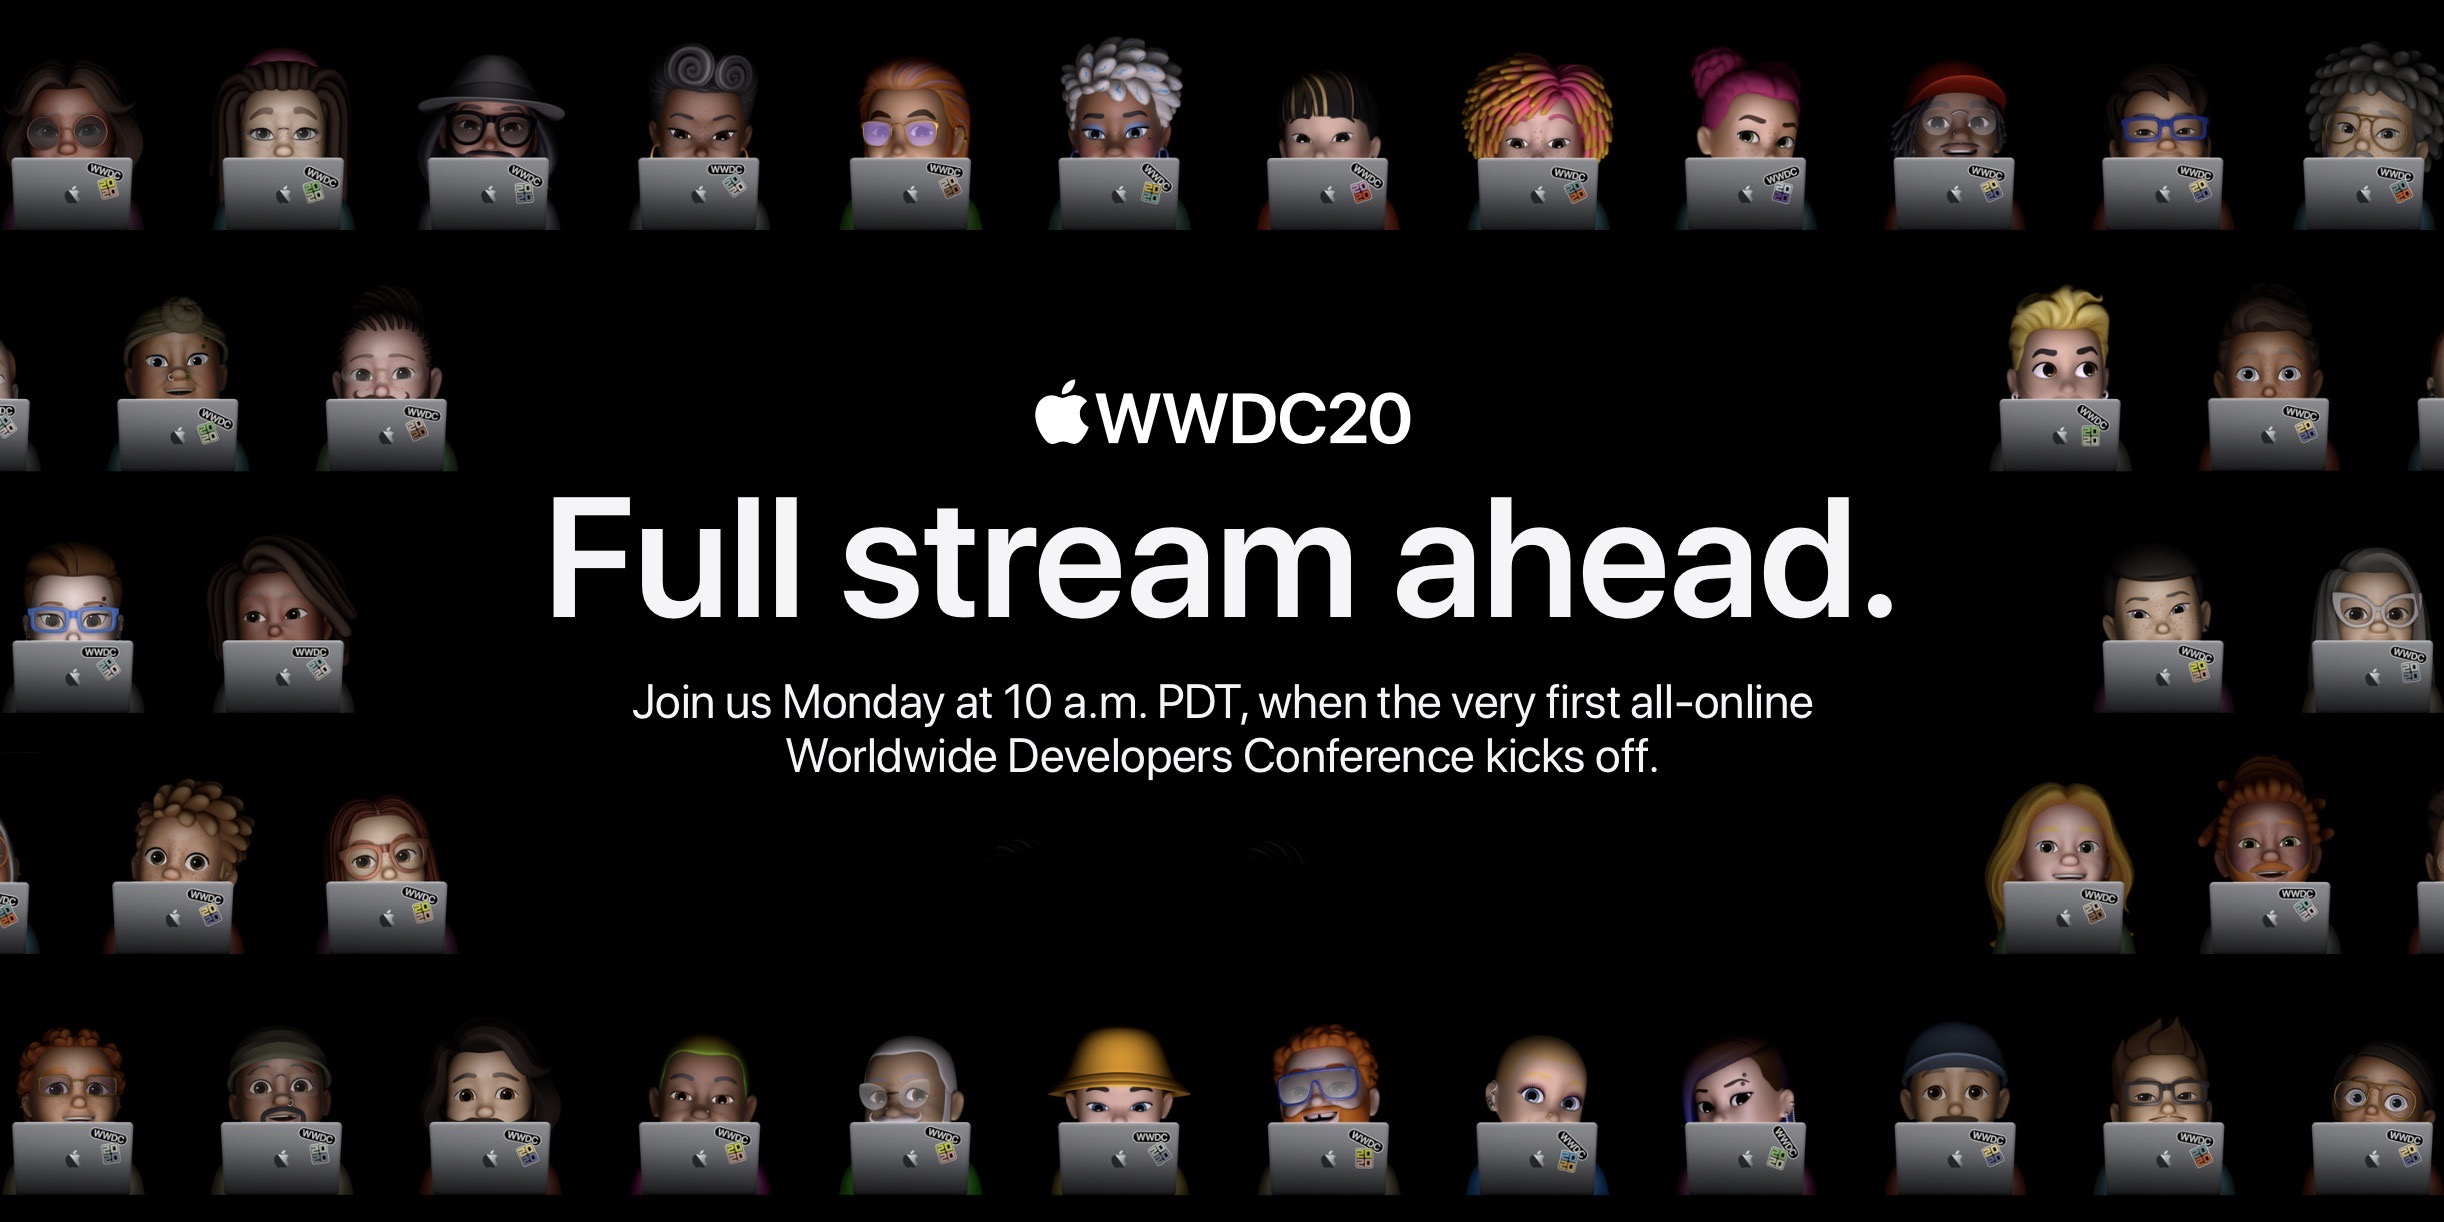 How To Watch Wwdc Keynote Iphone Mac Apple Tv The Web 9to5mac